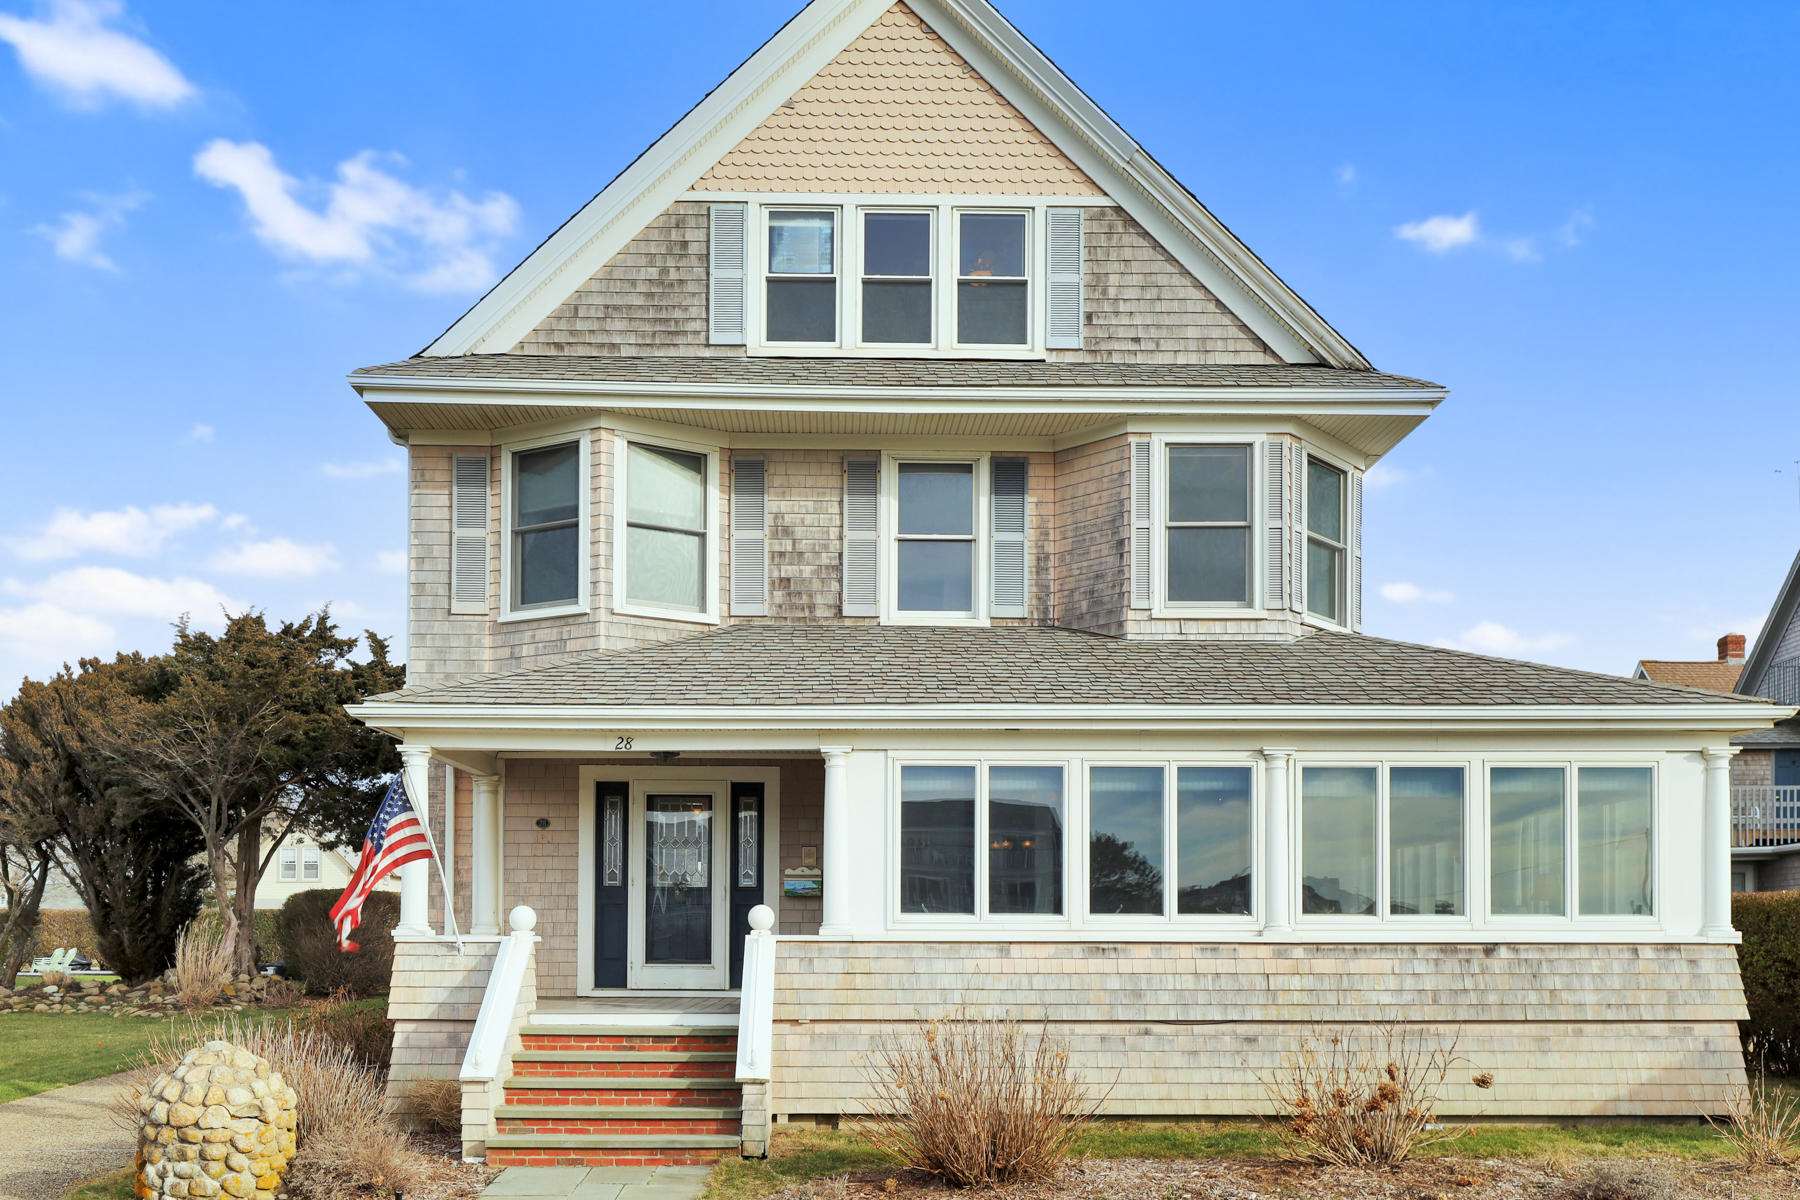 28 Worcester Avenue, Falmouth MA, 02540 details